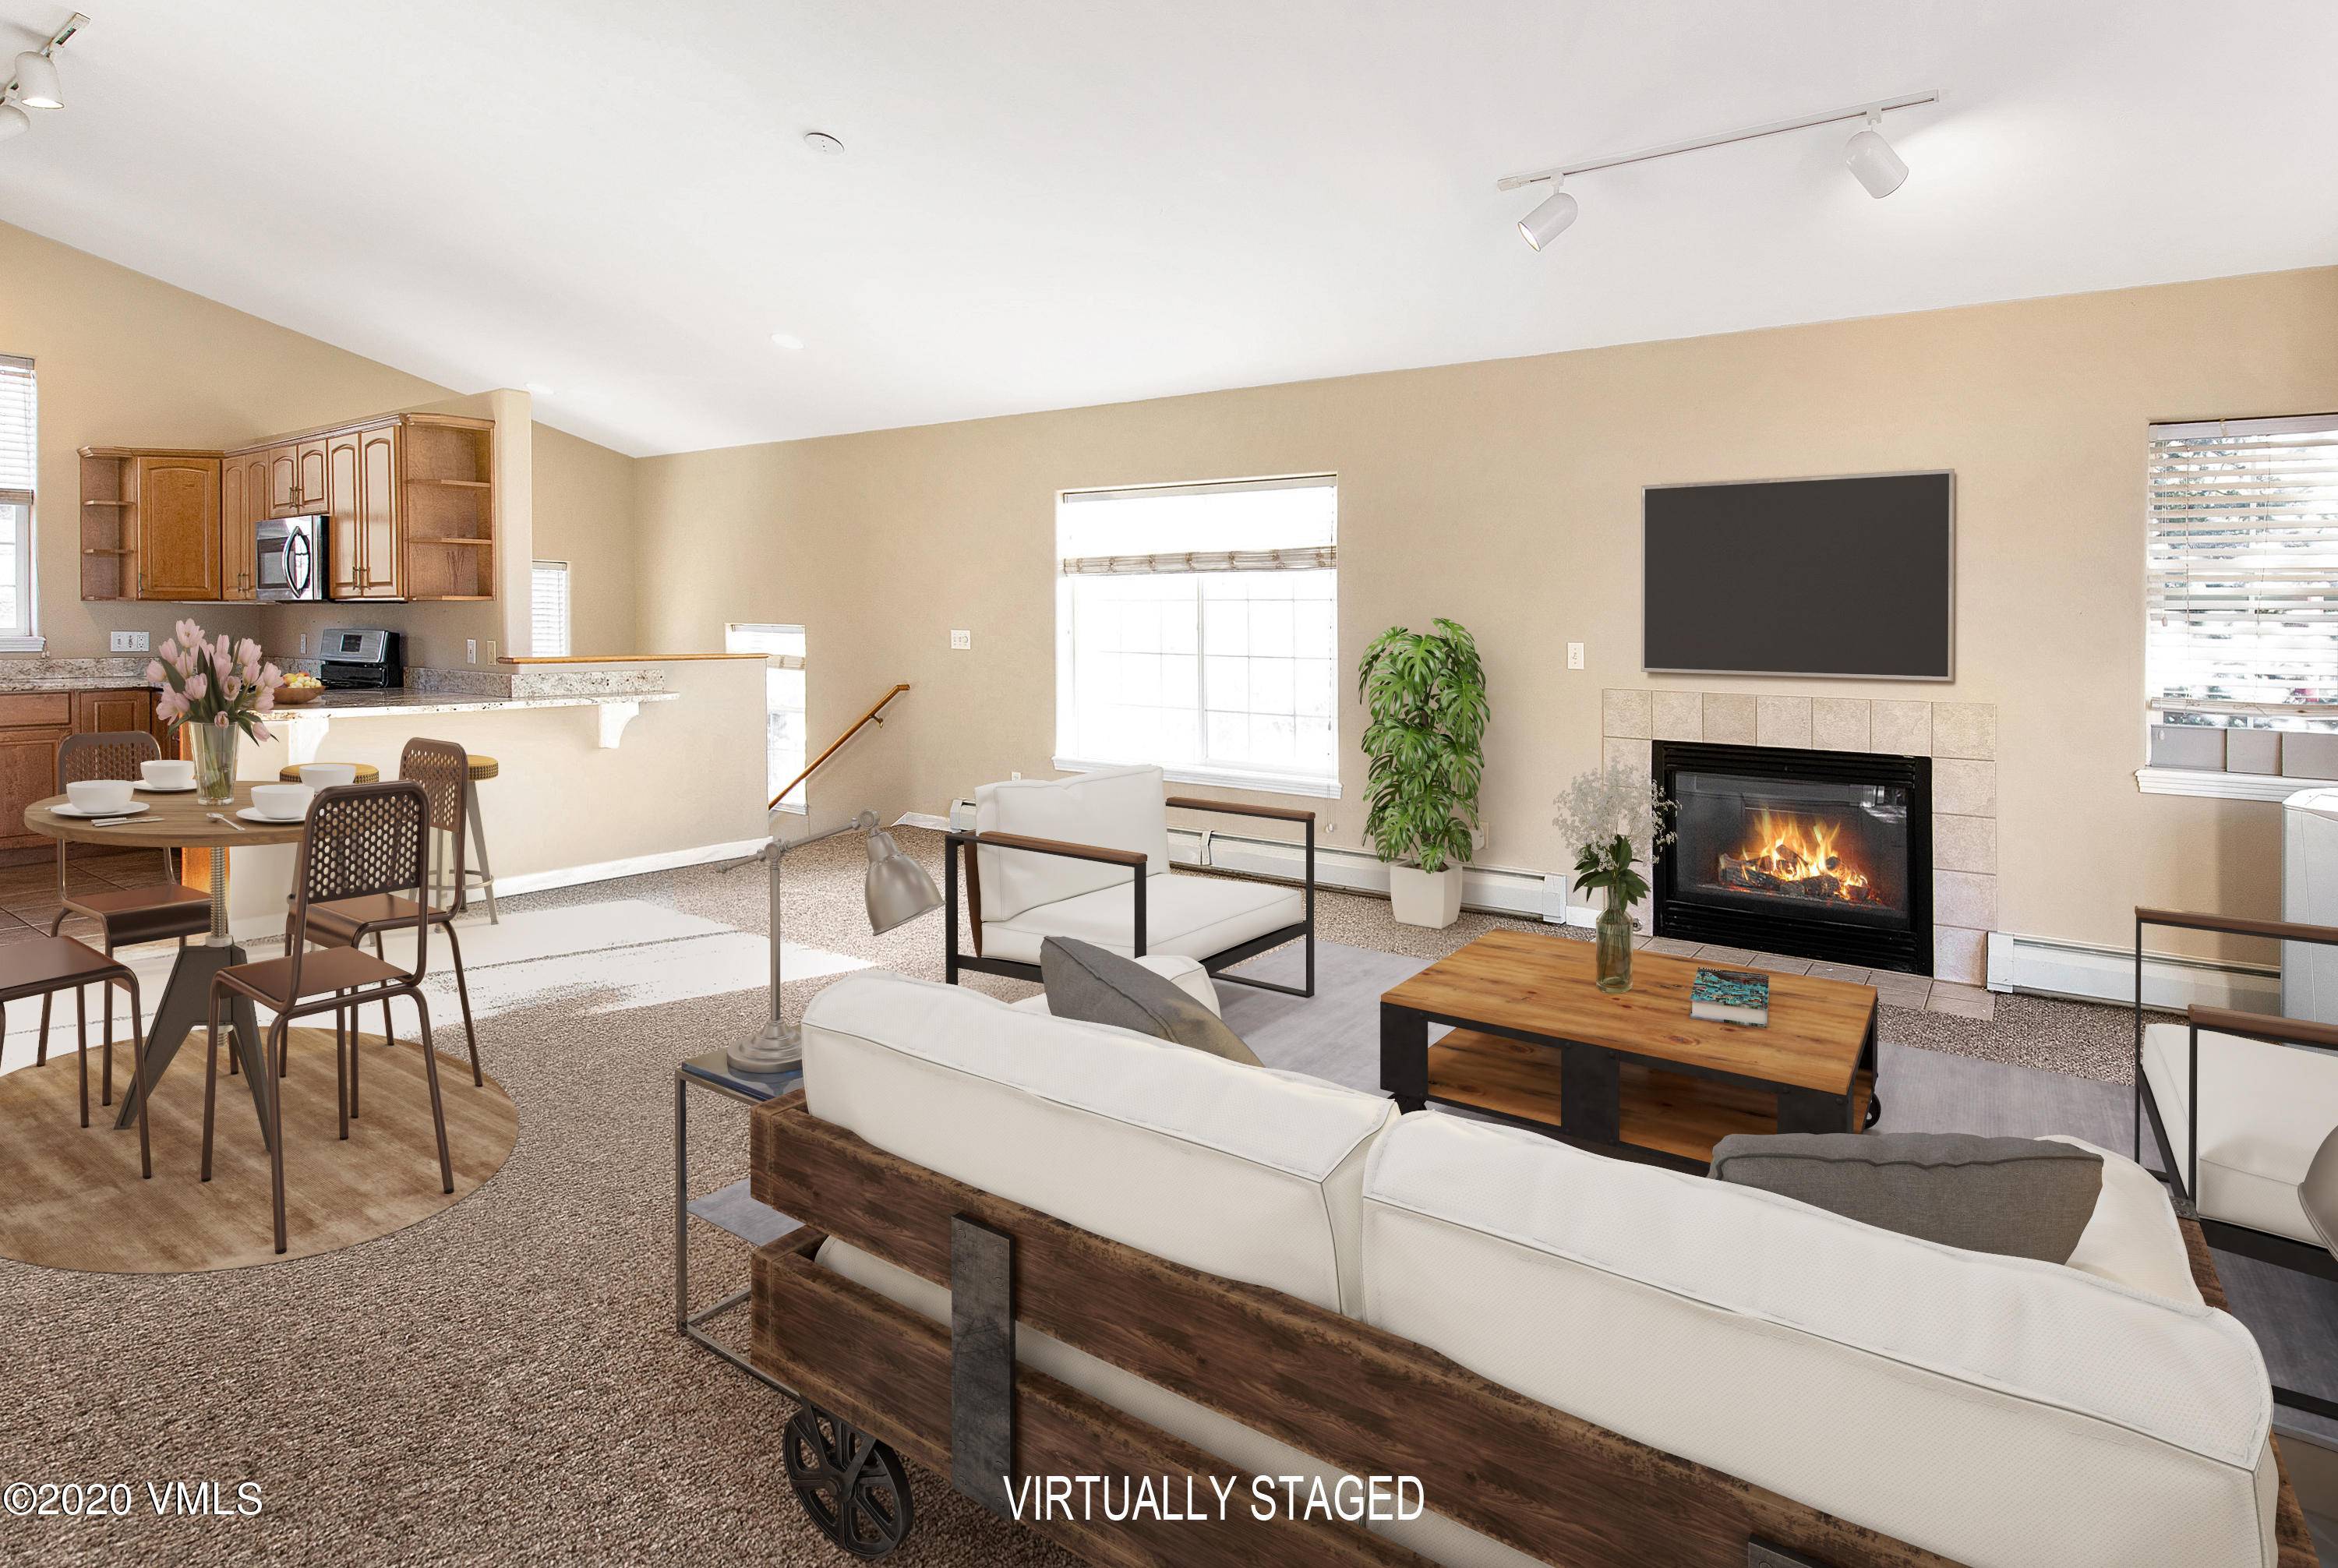 This spacious Wildridge 5-bedroom residence features a sunny open floor plan with the primary bedroom just off the living room on the main level and a 1-bedroom lock-off below. There is spacious fenced-in back yard making this home perfect for pet owners.